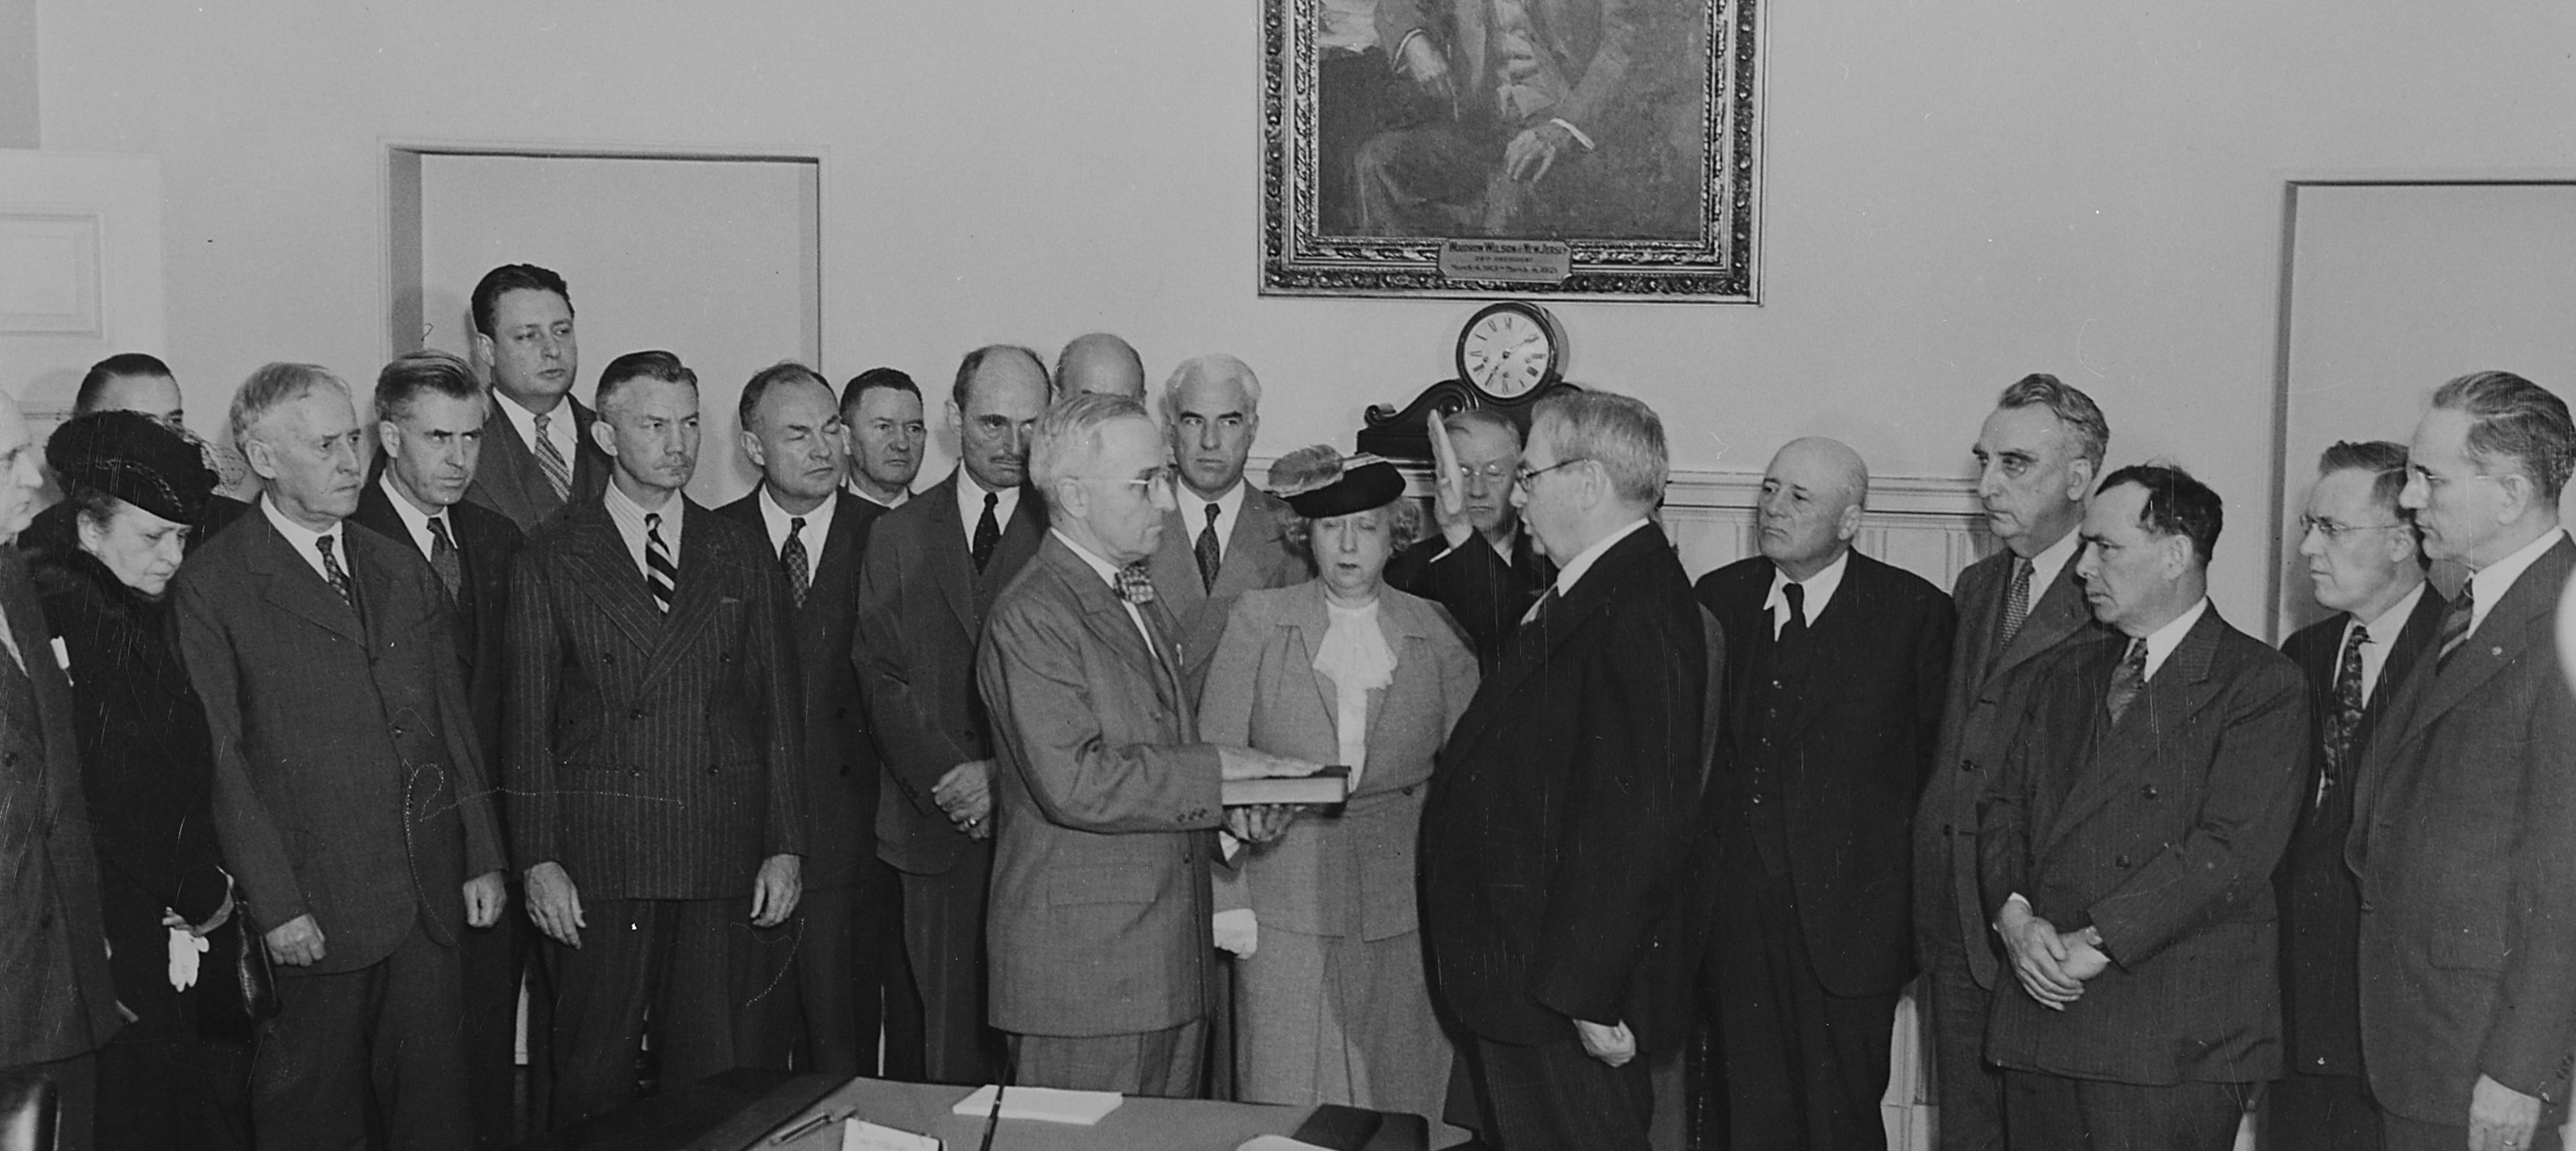 File:Harry S. Truman taking the oath of office.jpg - Wikimedia Commons